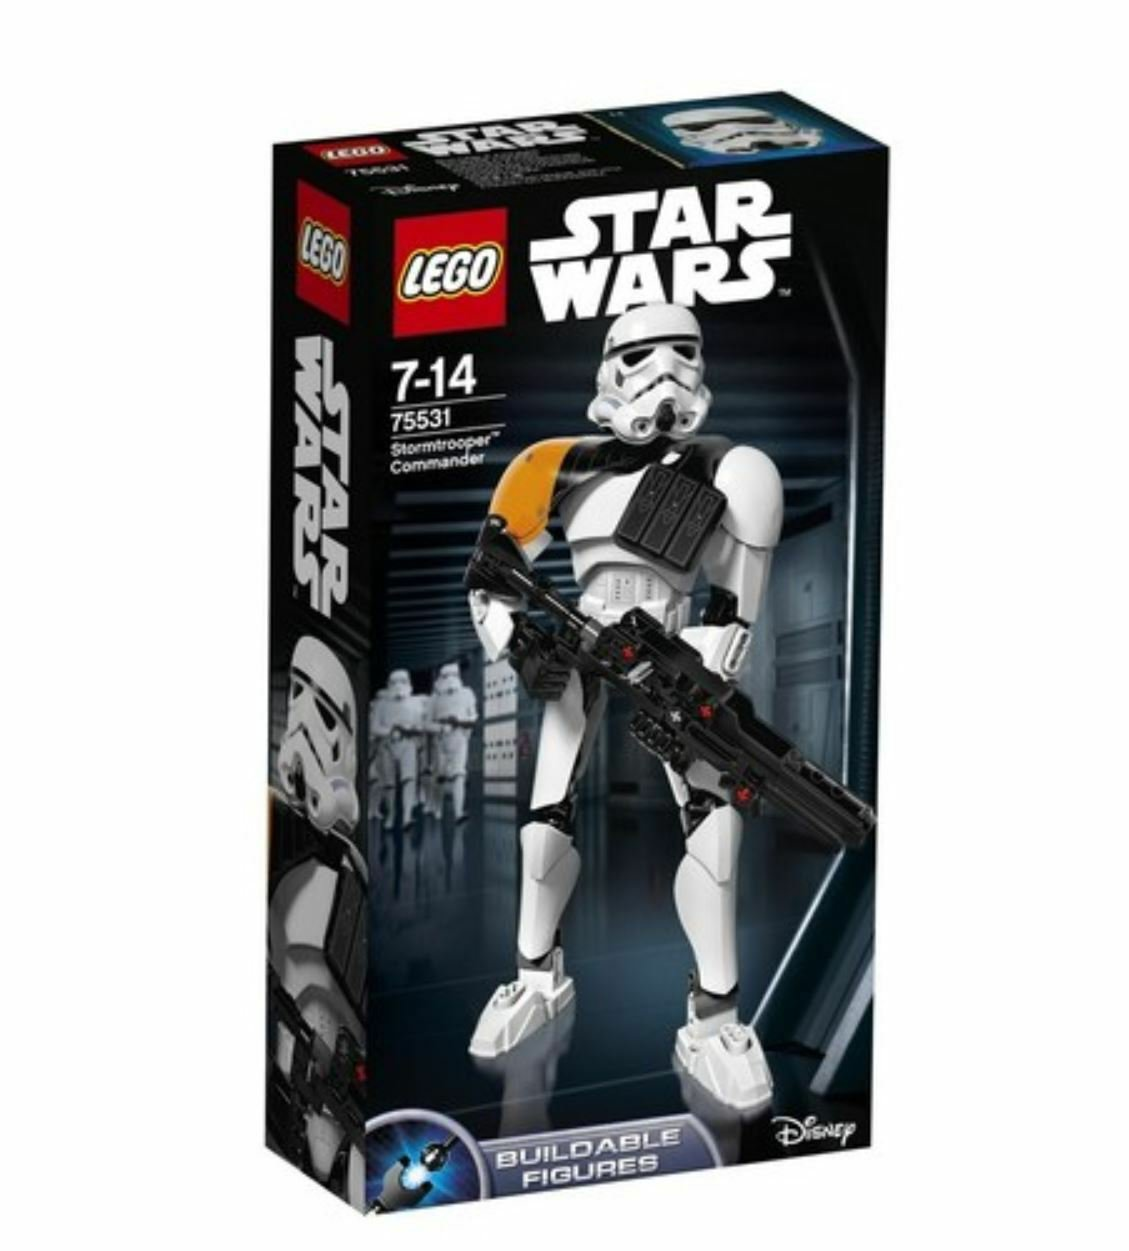 75531 Lego Star Wars Stormtrooper Commander